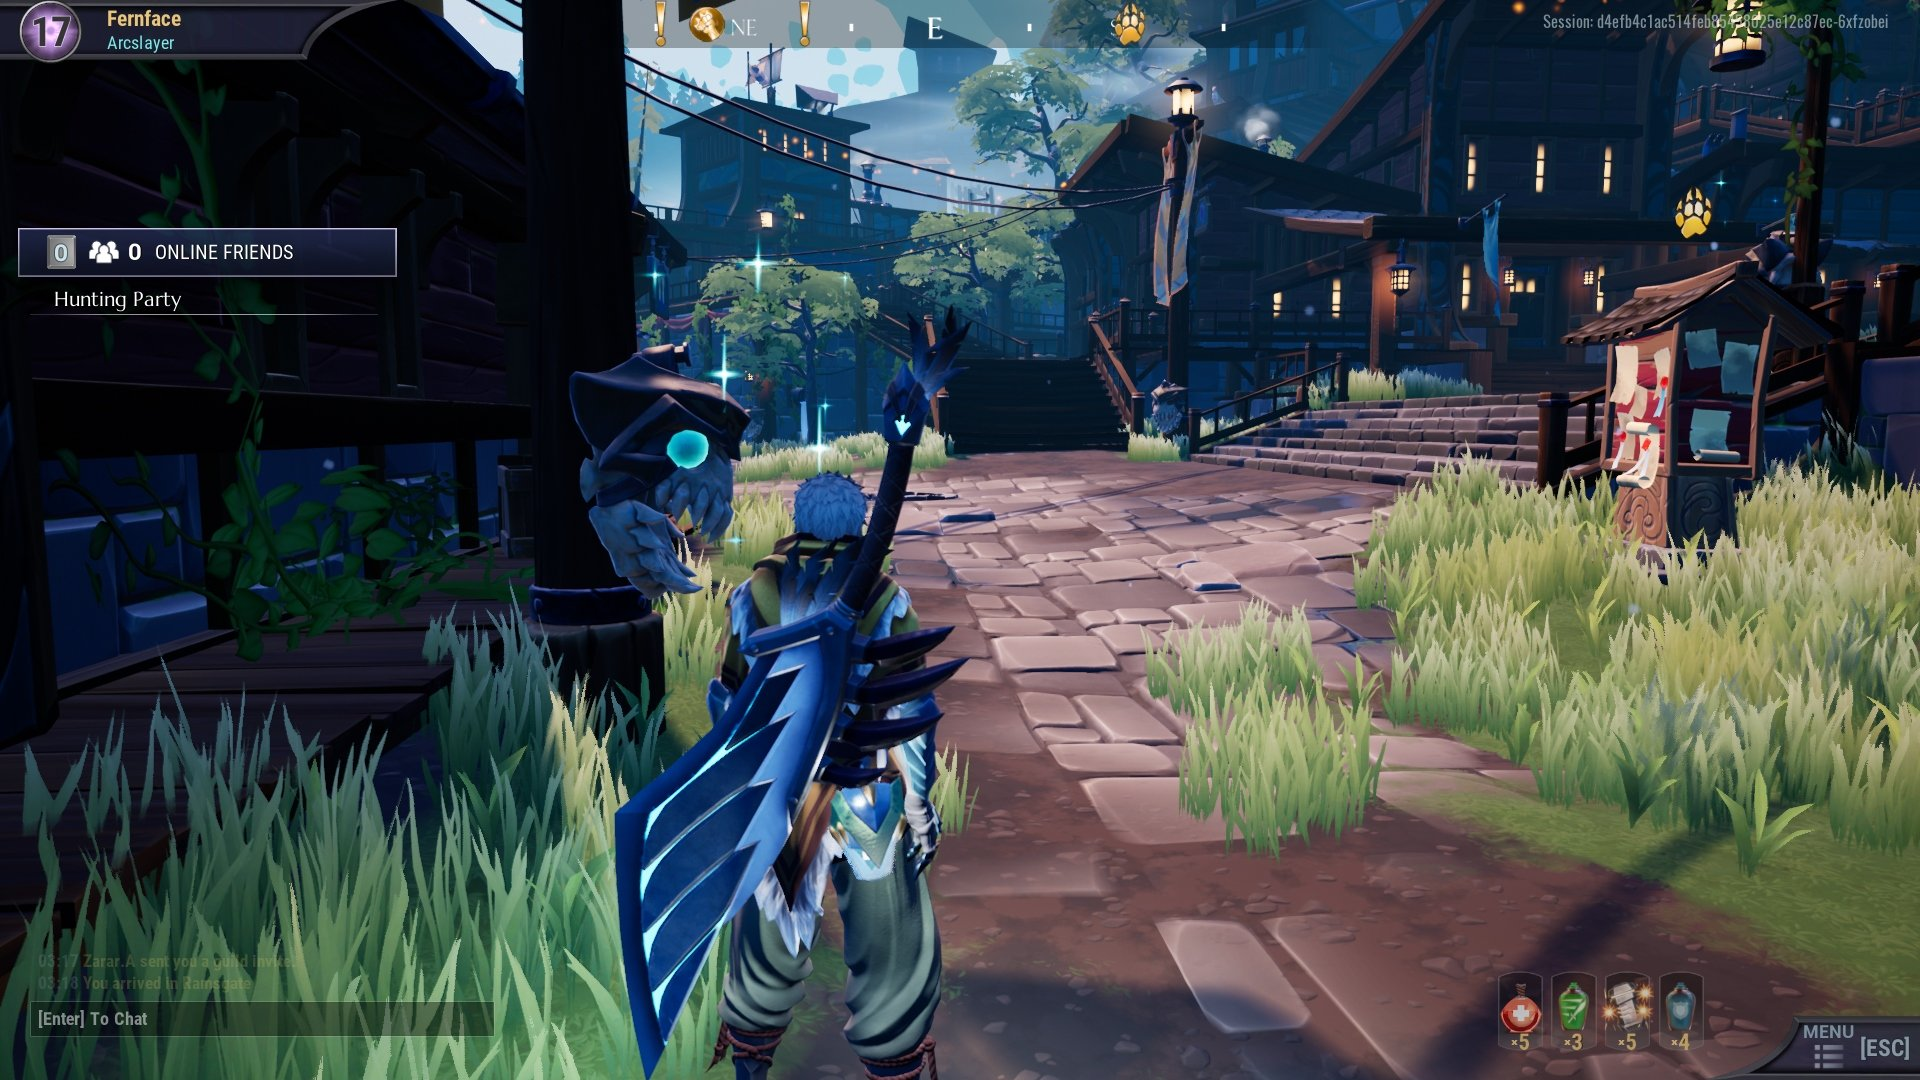 Dread Skull 6 - All daily dread skull locations in Dauntless